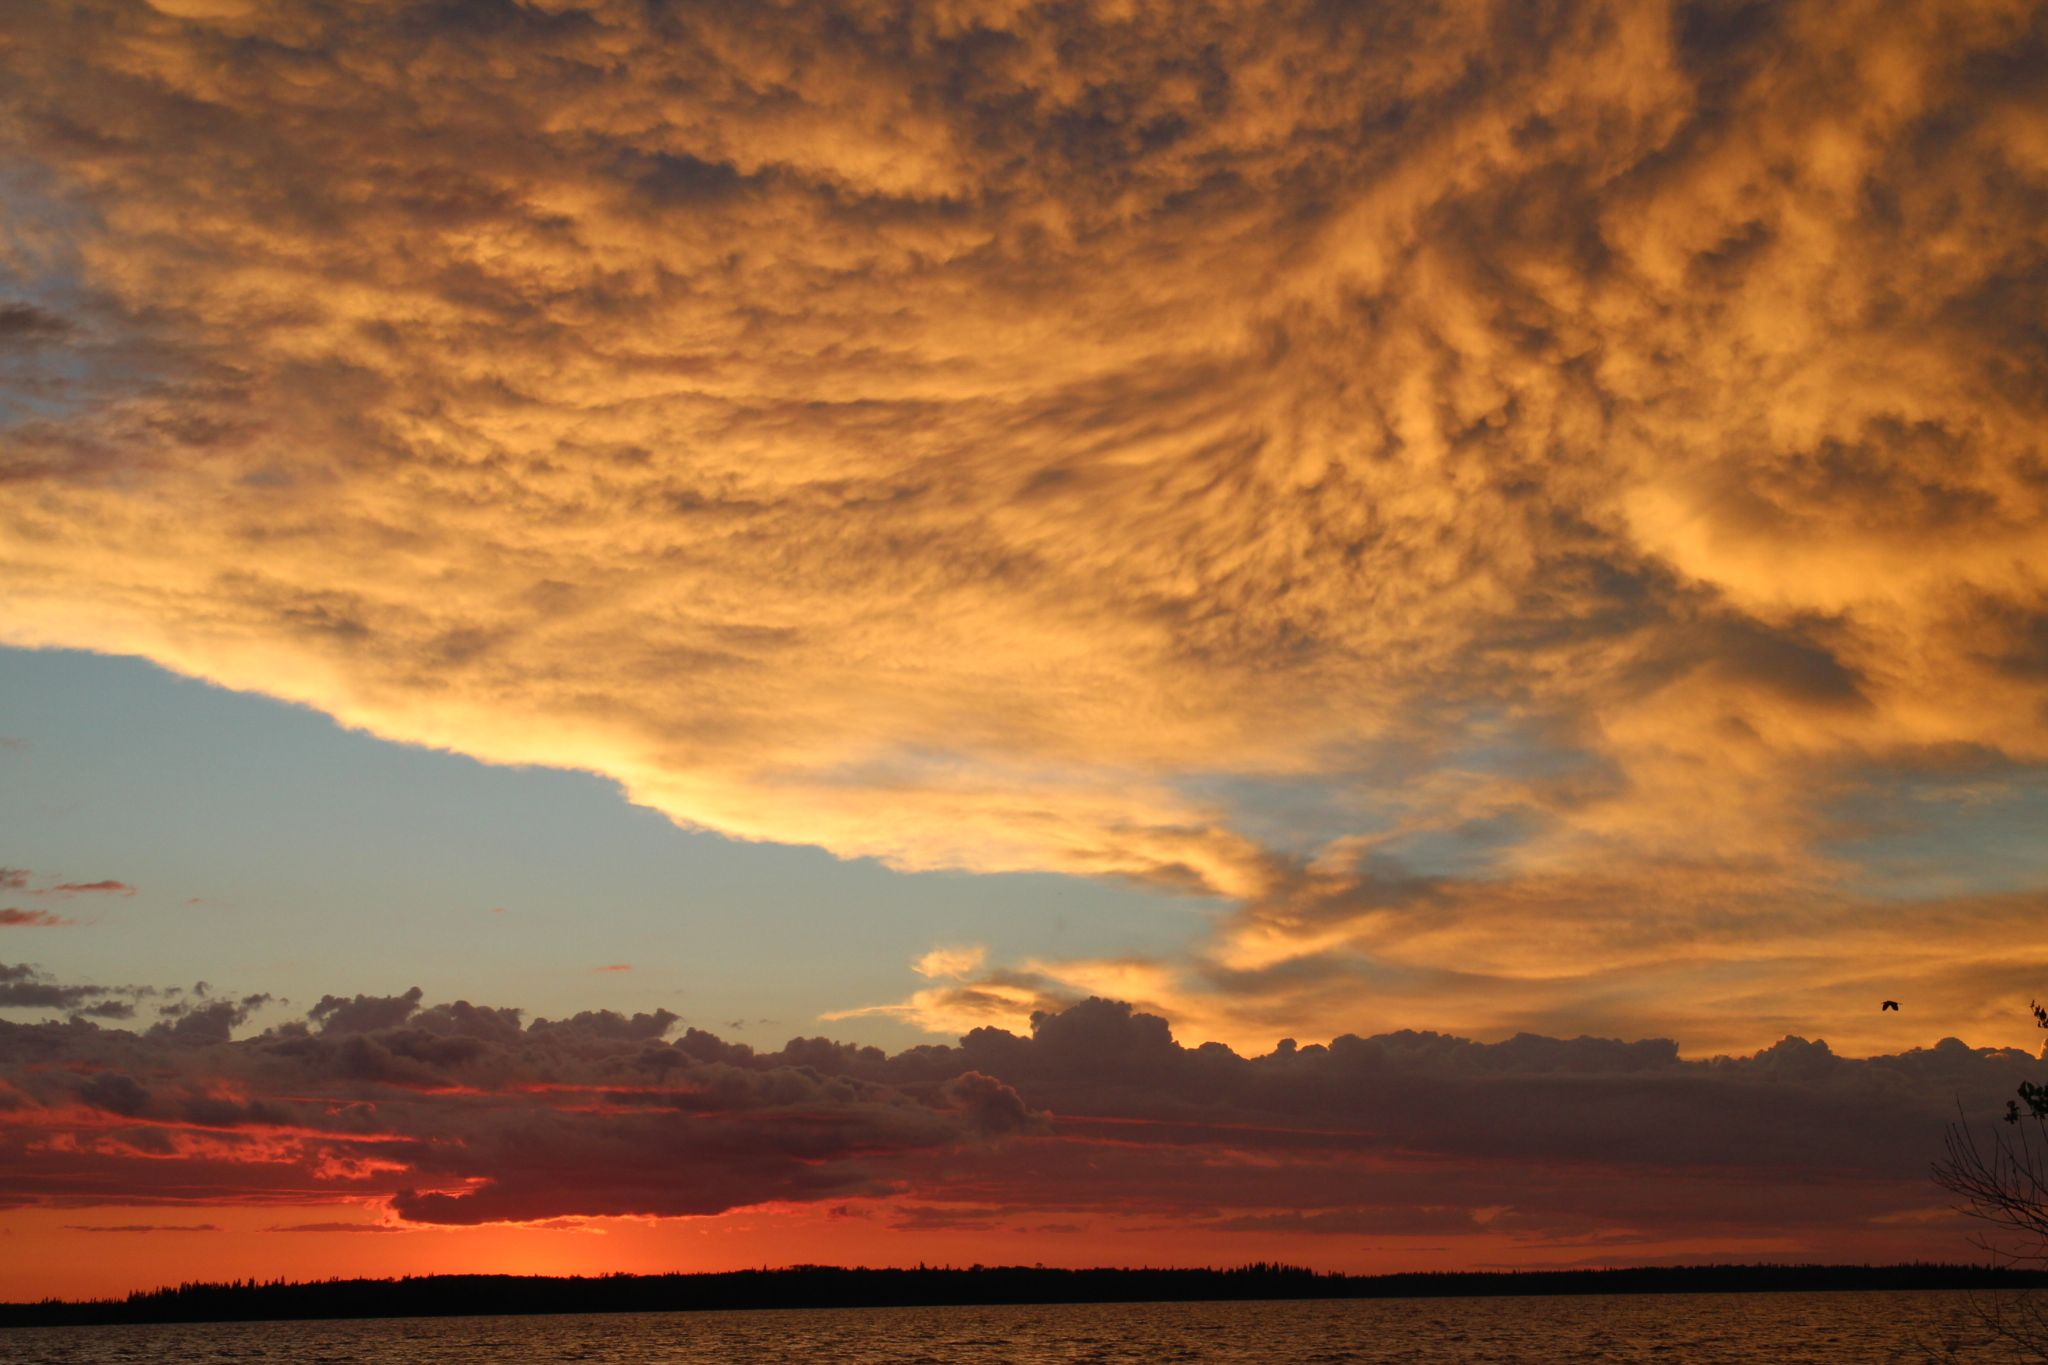 Sunset with Clouds by Annette McCann